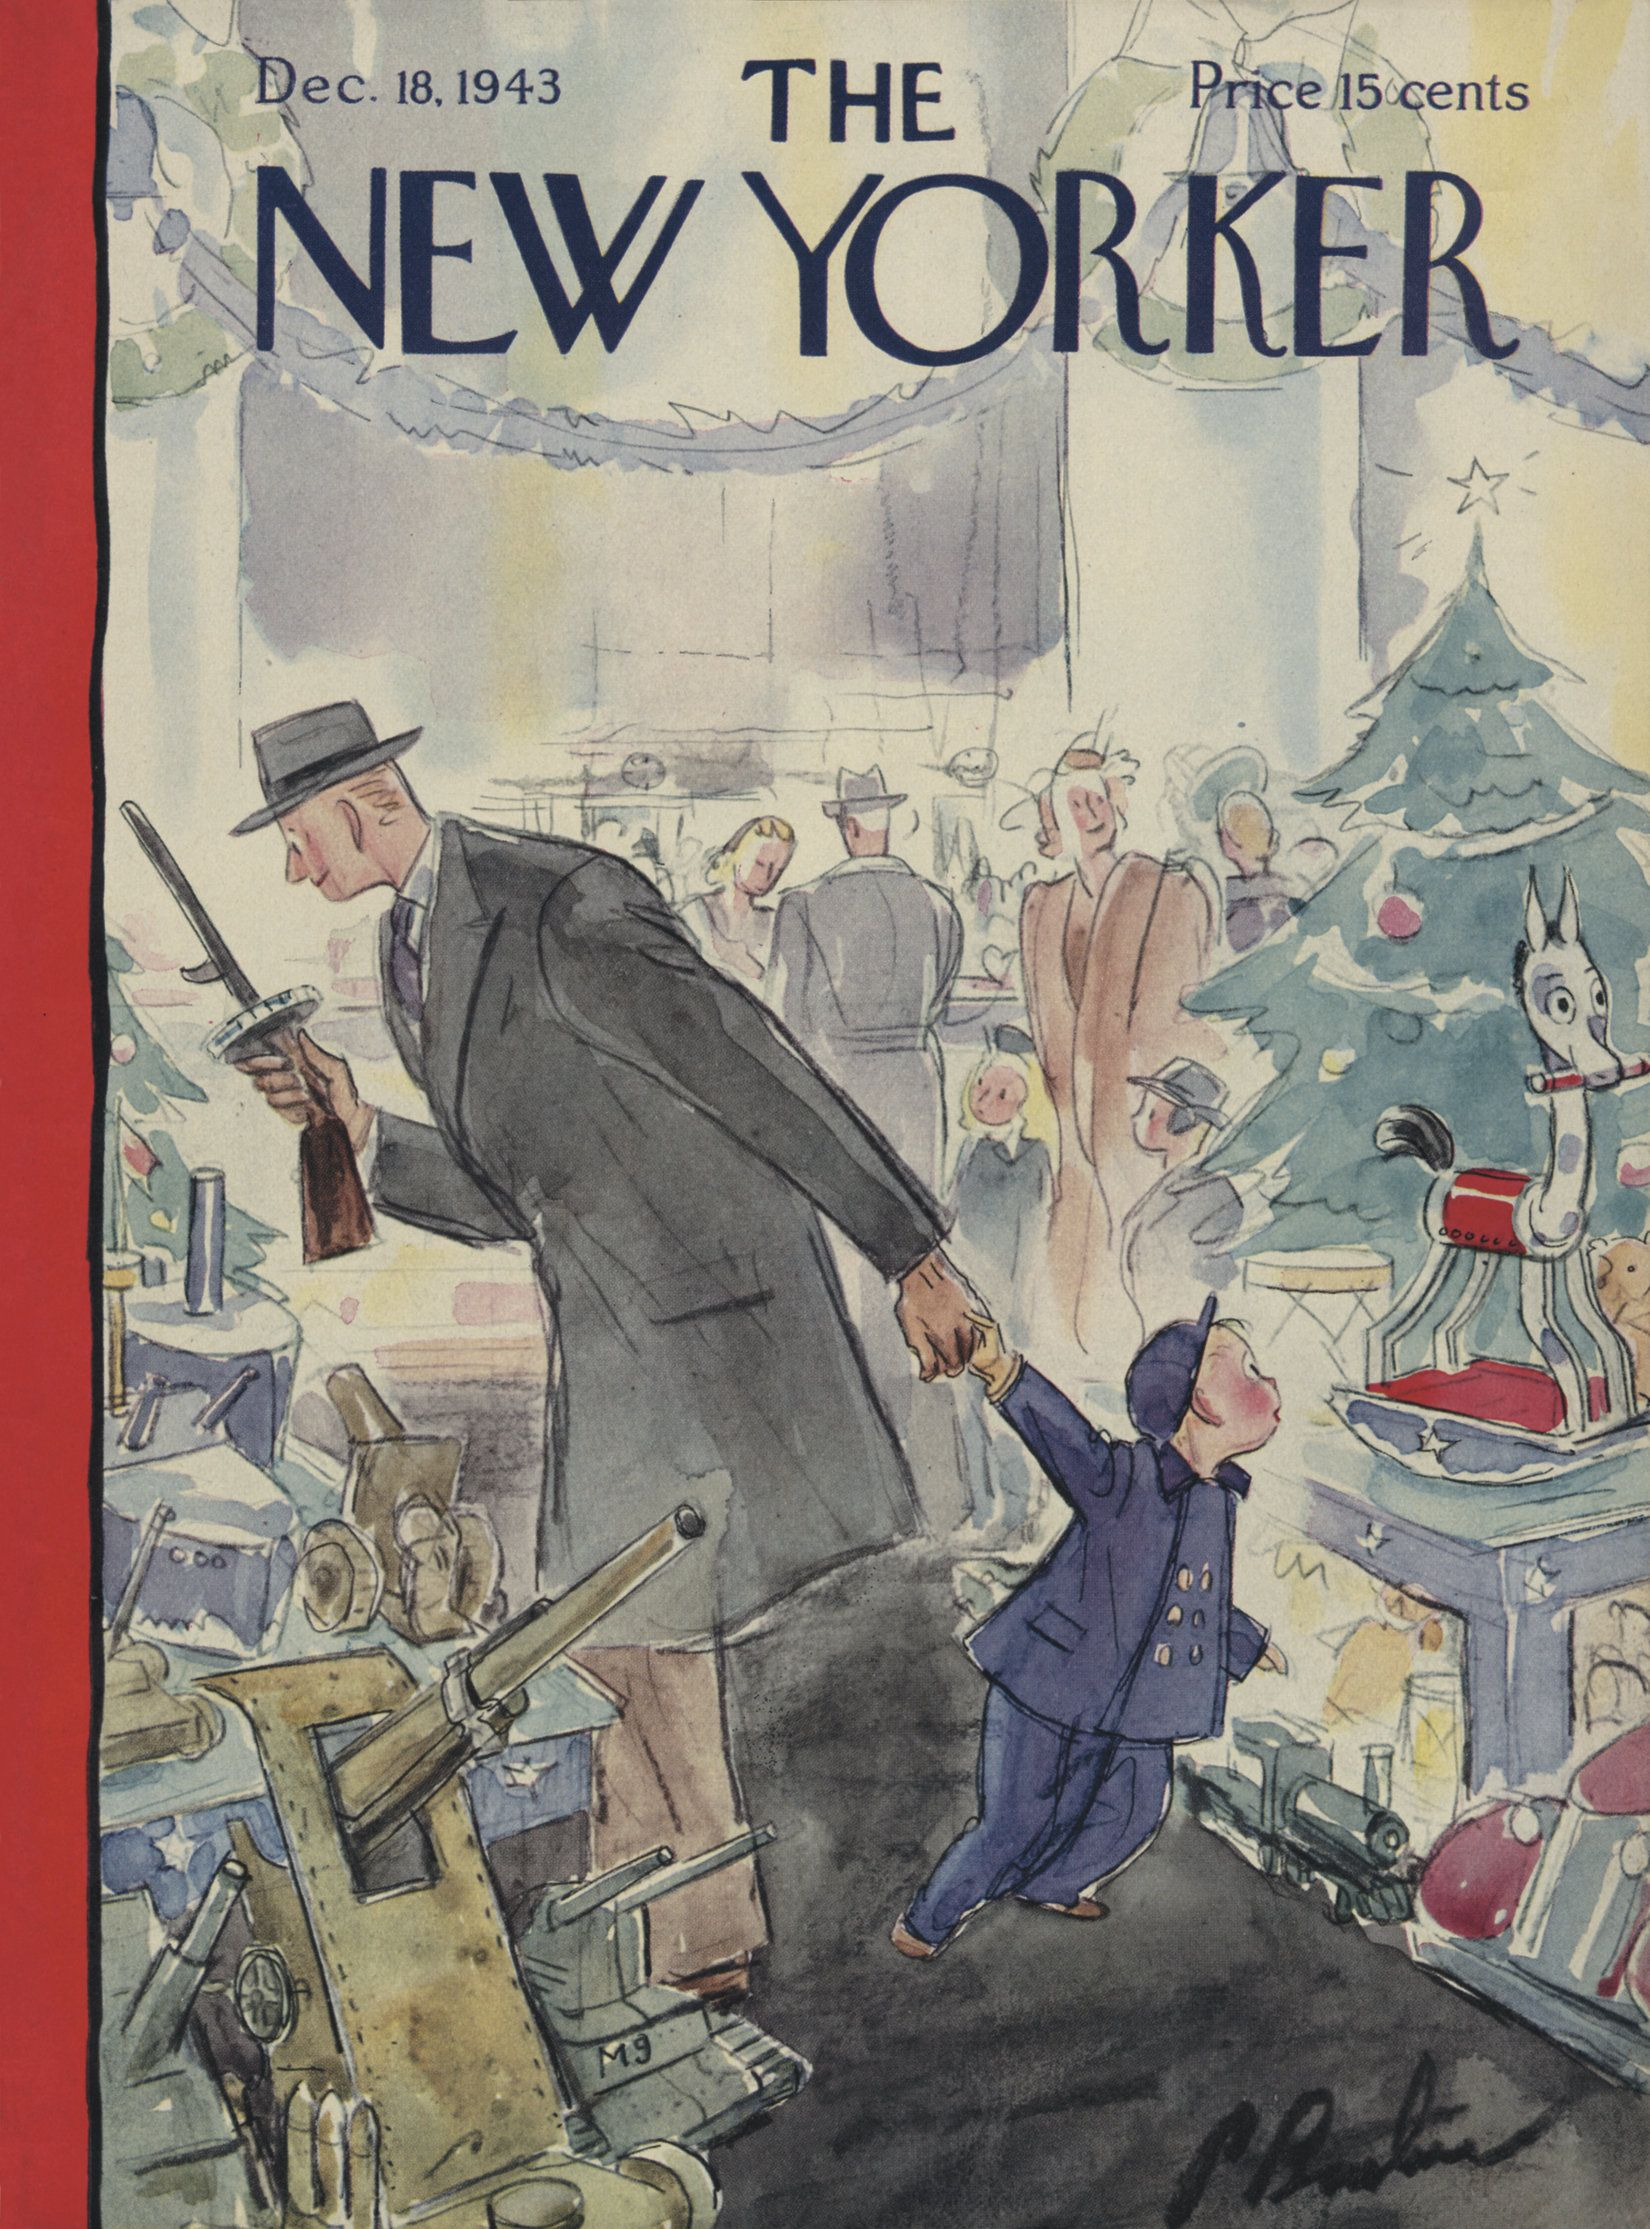 The New Yorker December 18 1943 Issue The New Yorker New Yorker Covers Cover Artwork